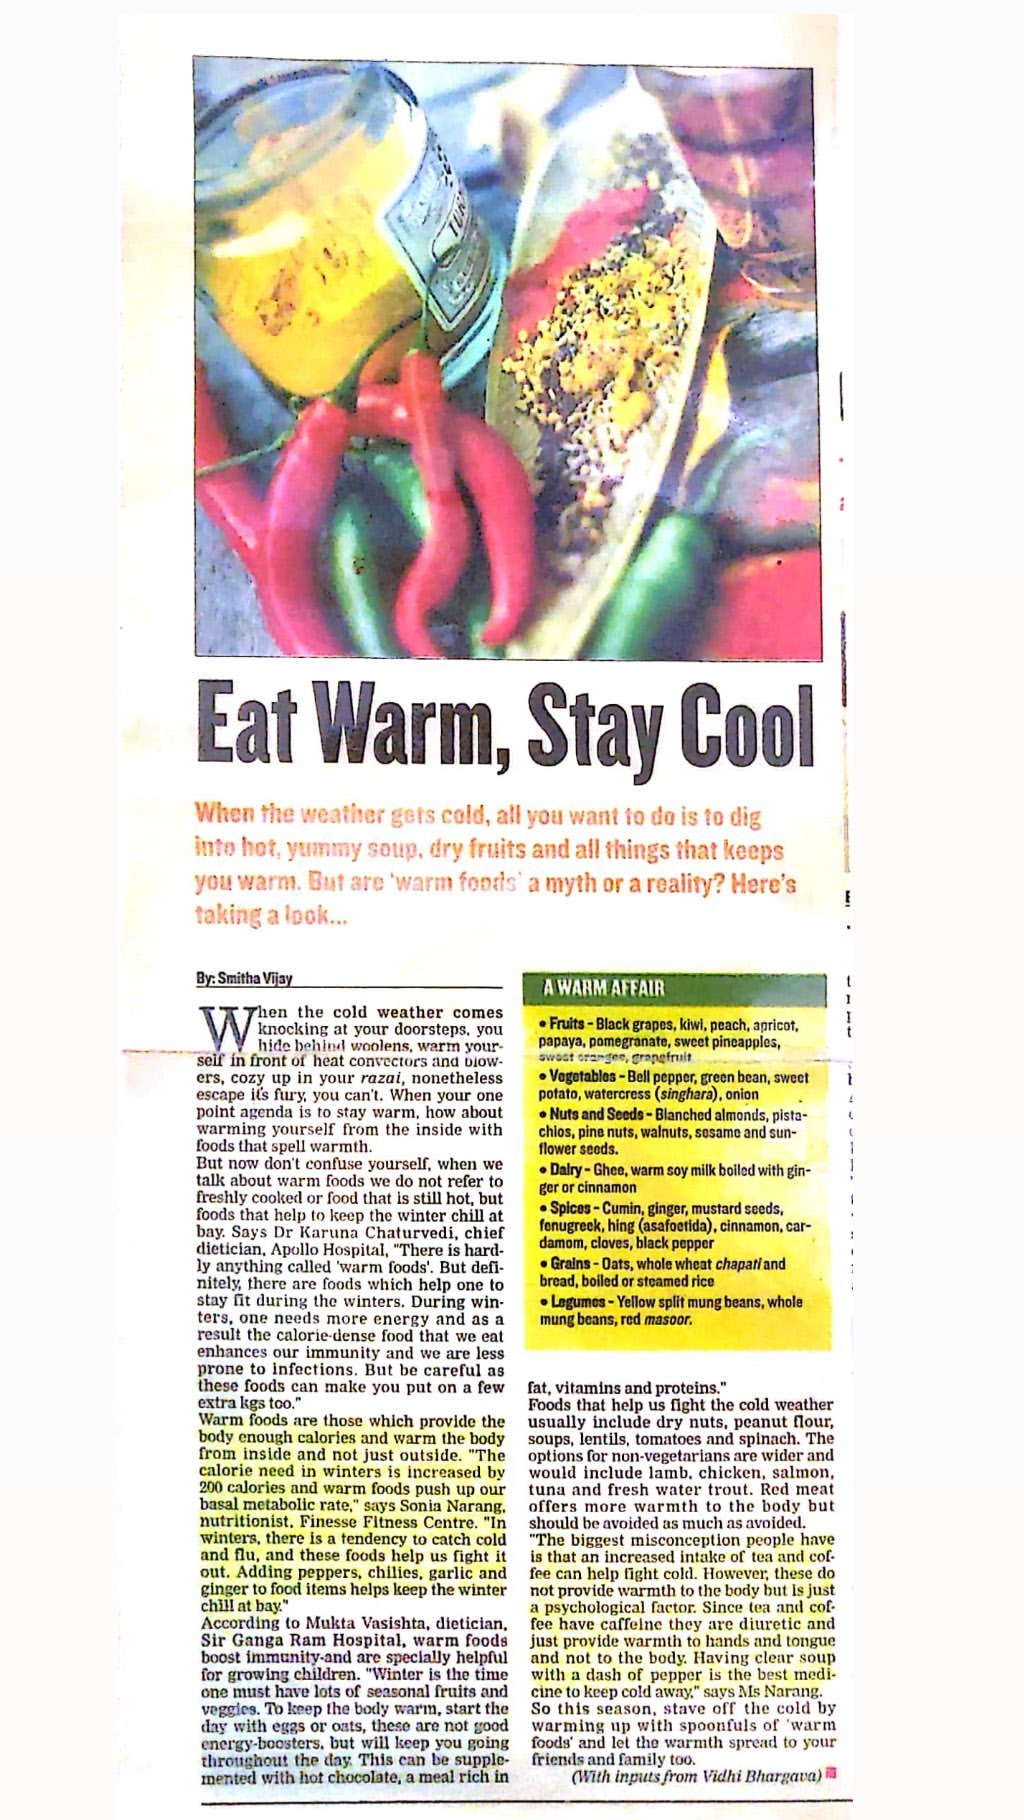 Eat Warm, Stay Cool